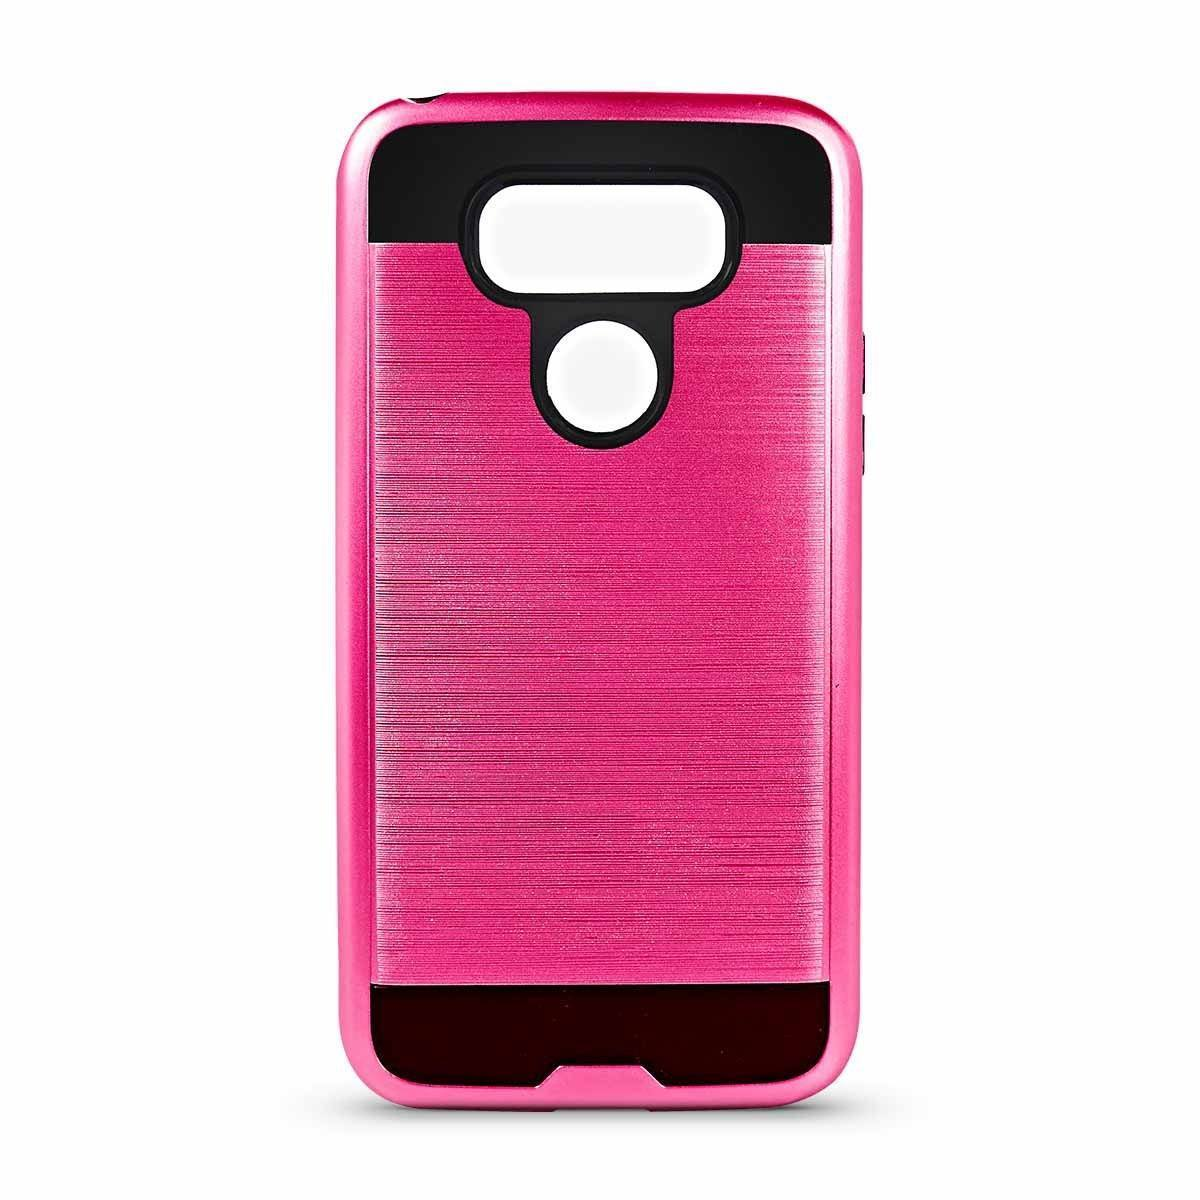 MD Hard Case for LG G6 - Pink